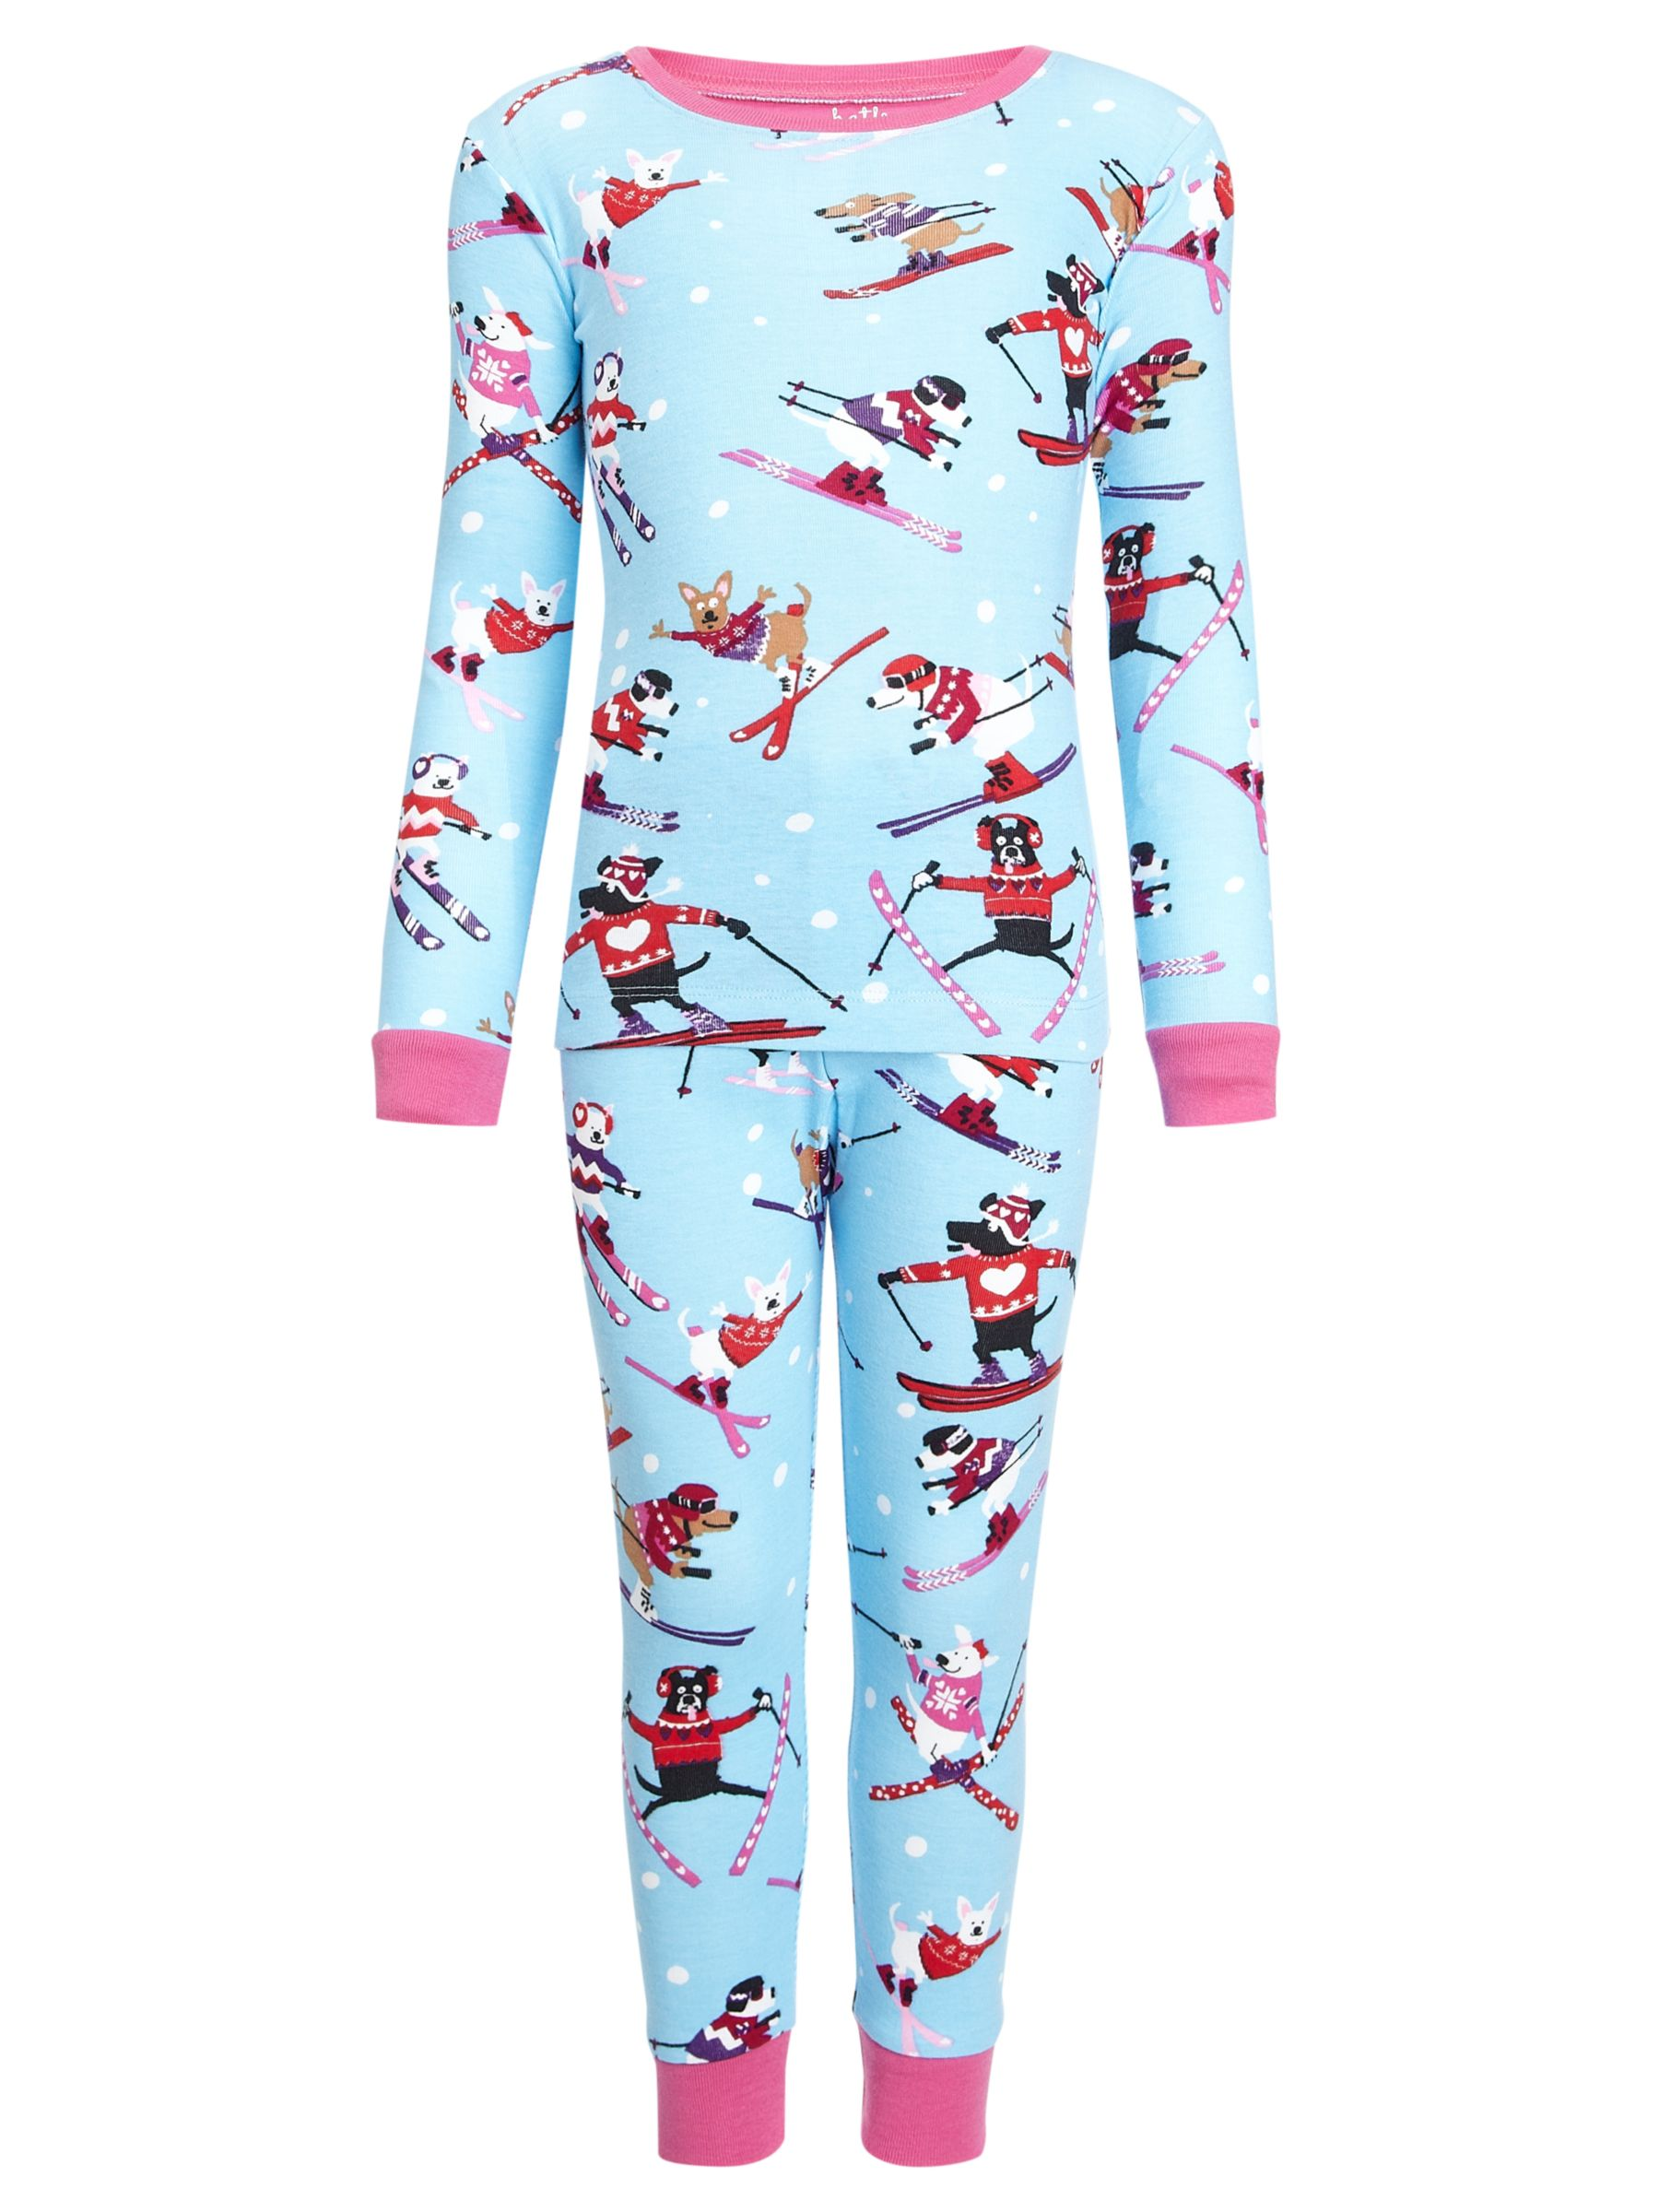 Hatley Skiing Dog Pyjamas, Multi